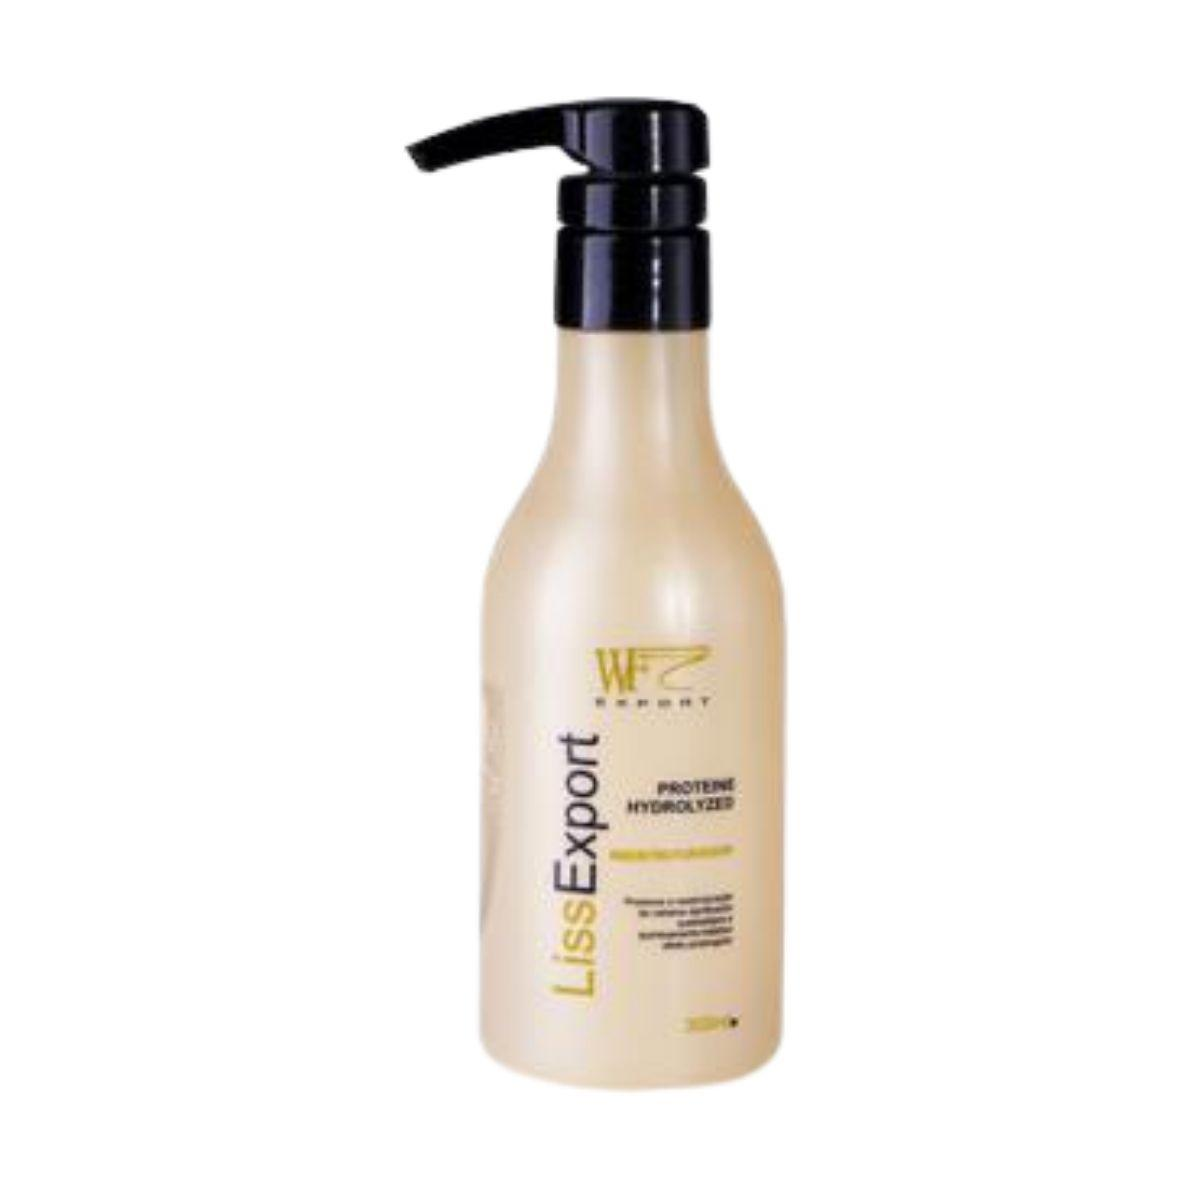 LISS EXPORT - QUERATINA PROTEINE HIDROGILIZED WF COSMETICOS 300ML